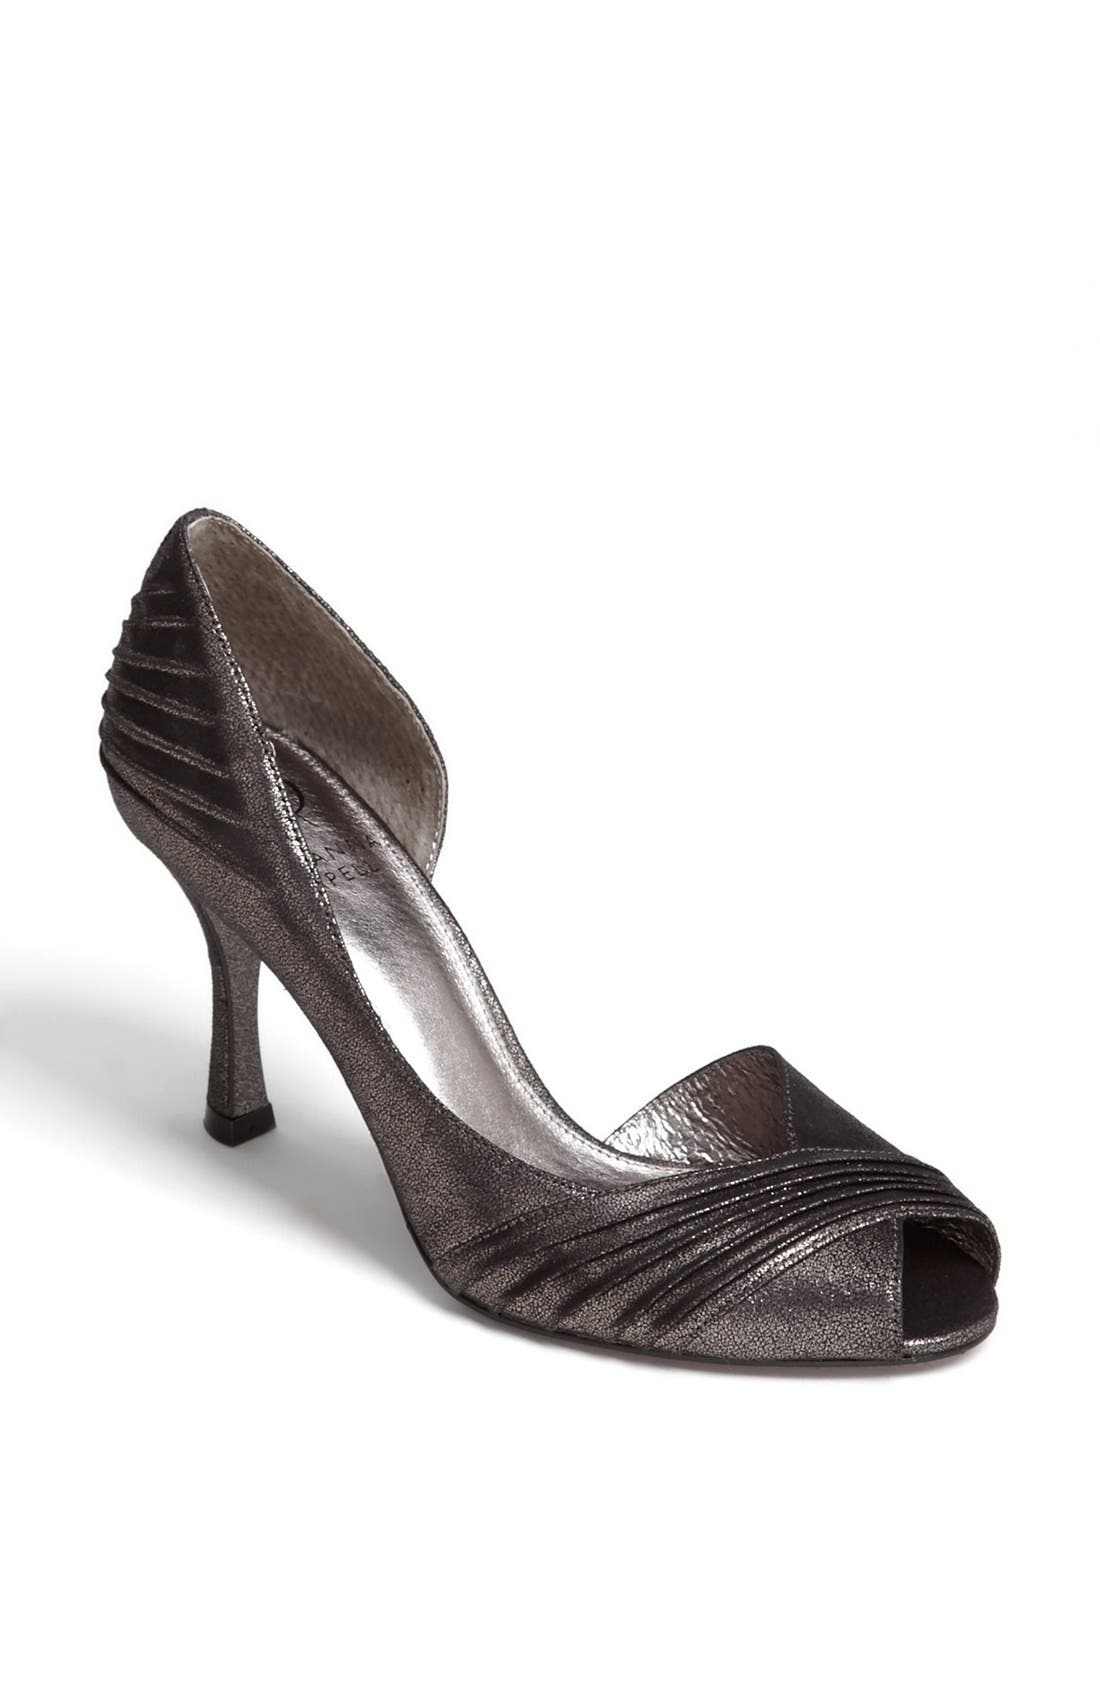 Main Image - Adrianna Papell 'Fritz' Pump (Online Only)